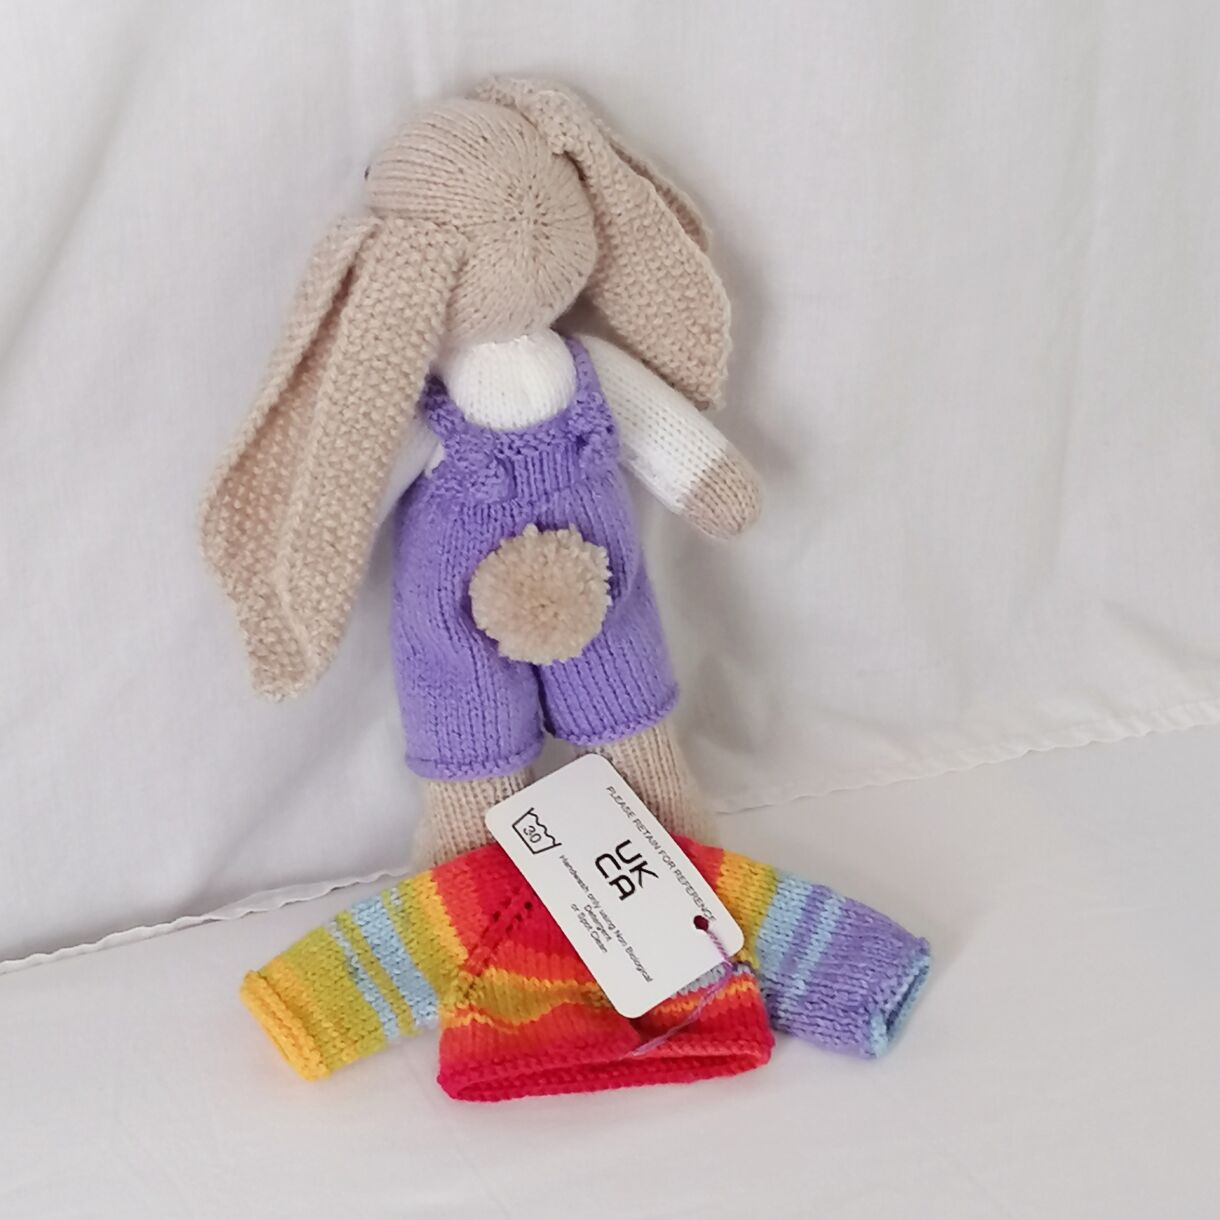 handknitted-rainbow-bunny-unique-gift-purple-back-no-jacket